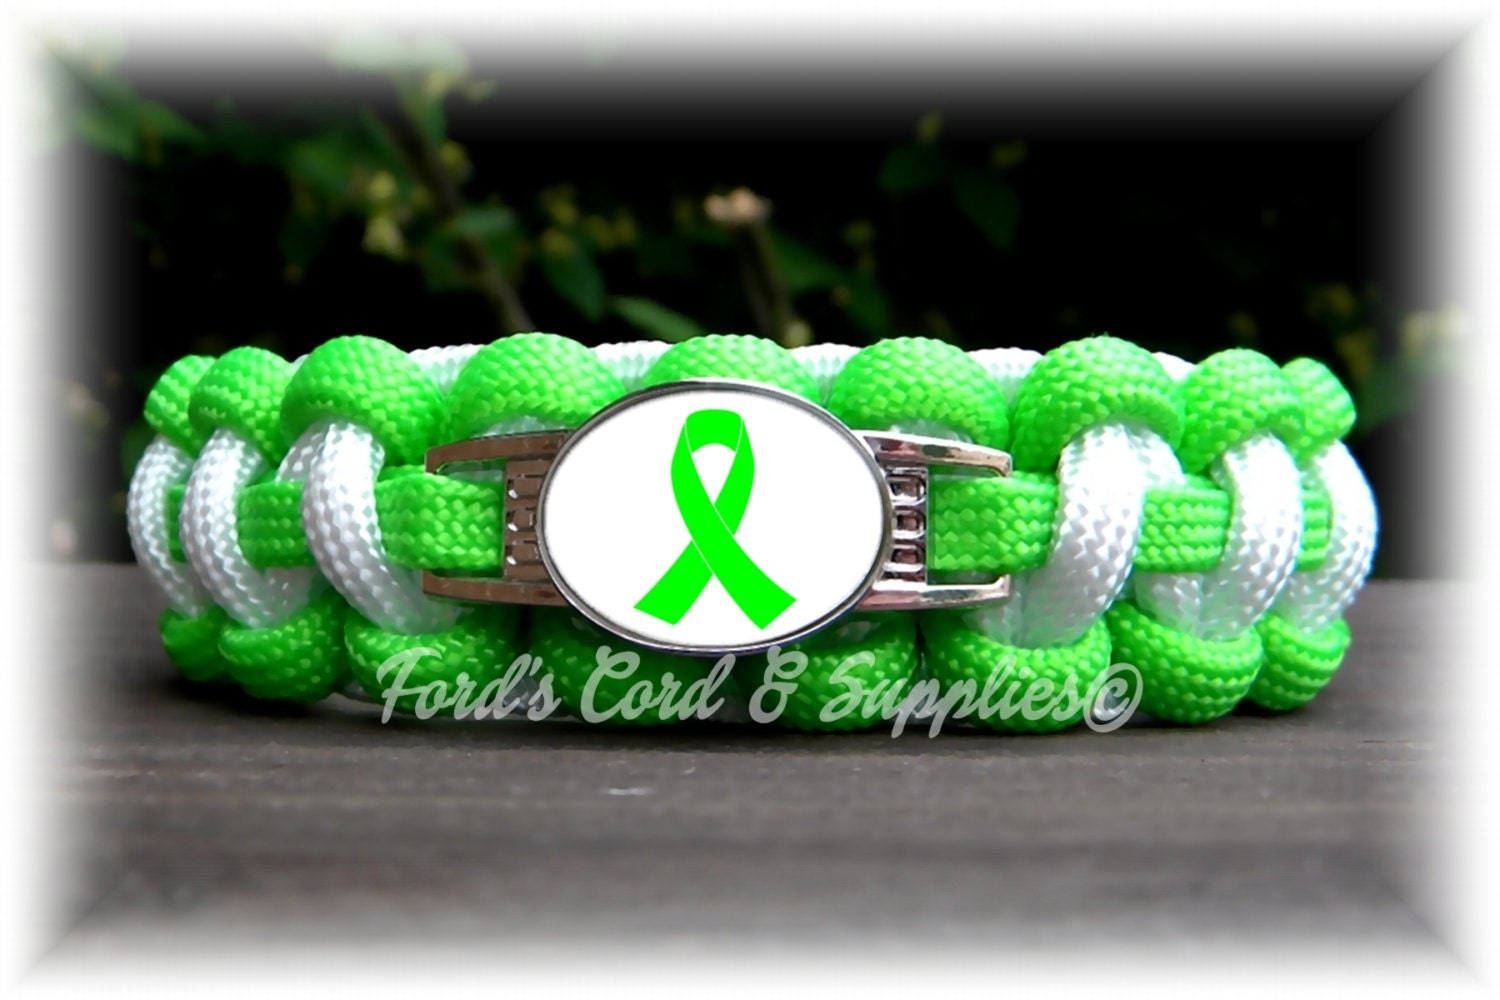 sensational springs inspiration ideas support bold palm mental design troops courseguide best cheap health awareness now classy cancer colors golf wristbands our bracelet bracelets epilepsy for online